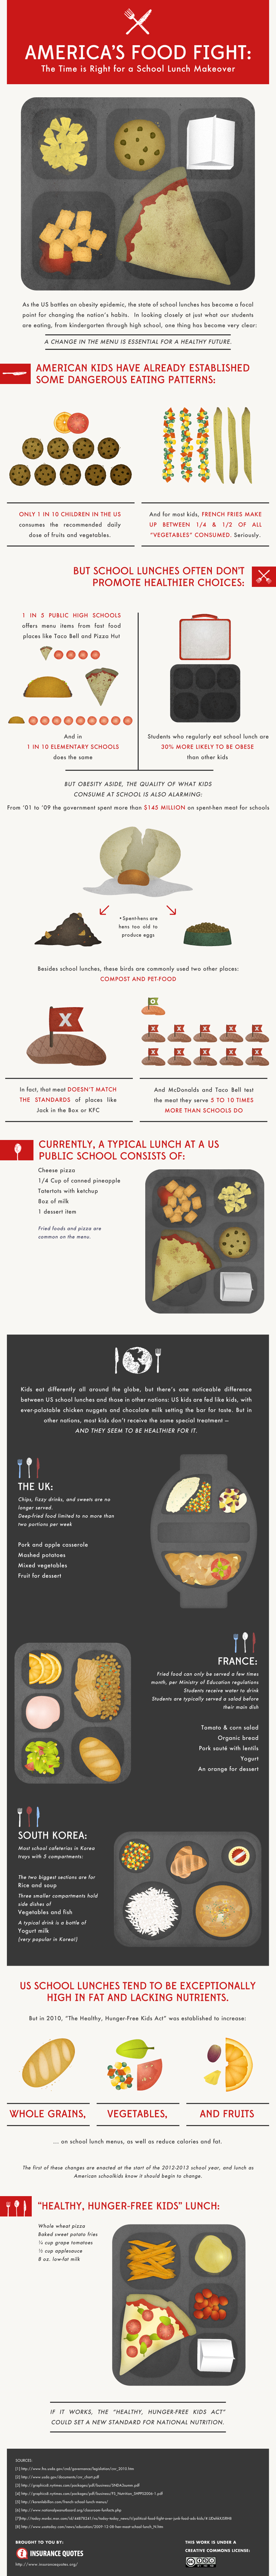 What is in School Lunches